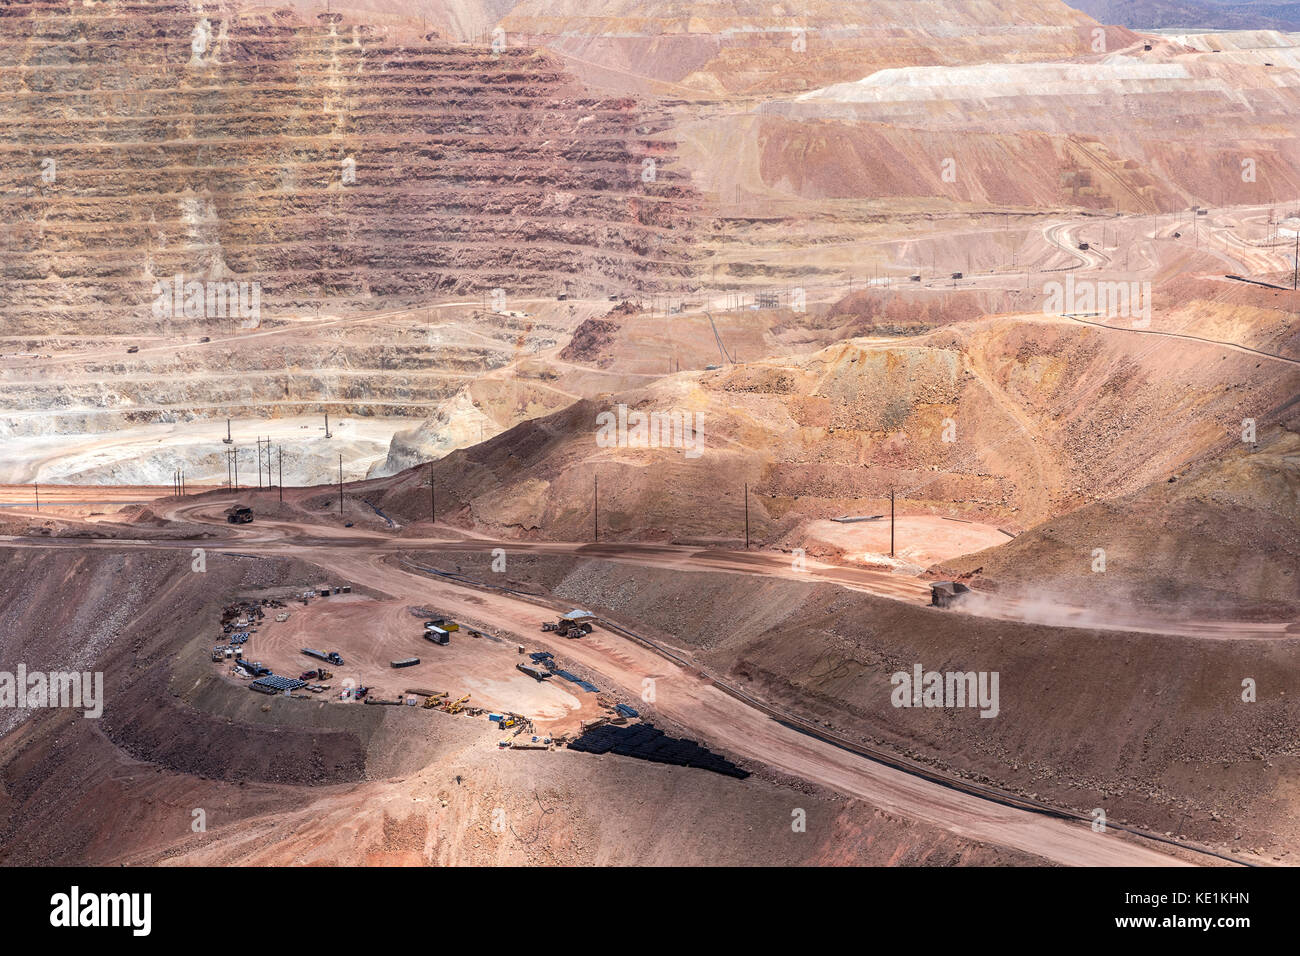 Morenci Copper Mine, Among the largest copper mines in the world, Greenlee County, Arizona, USA - Stock Image